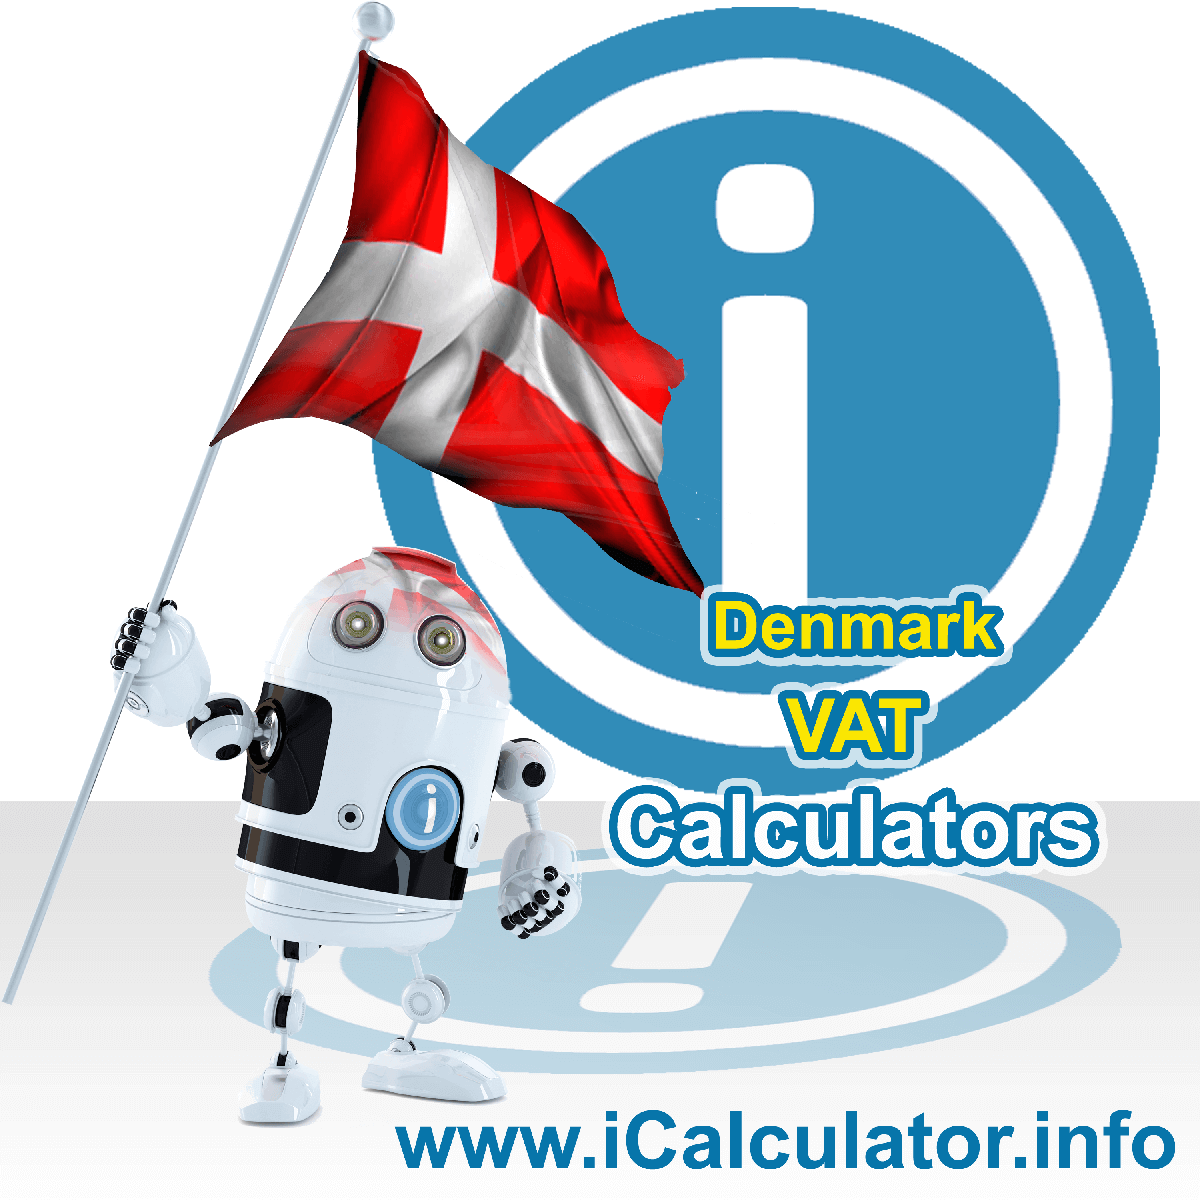 Denmark VAT Calculator. This image shows the Denmark flag and information relating to the VAT formula used for calculating Value Added Tax in Denmark using the Denmark VAT Calculator in 2020